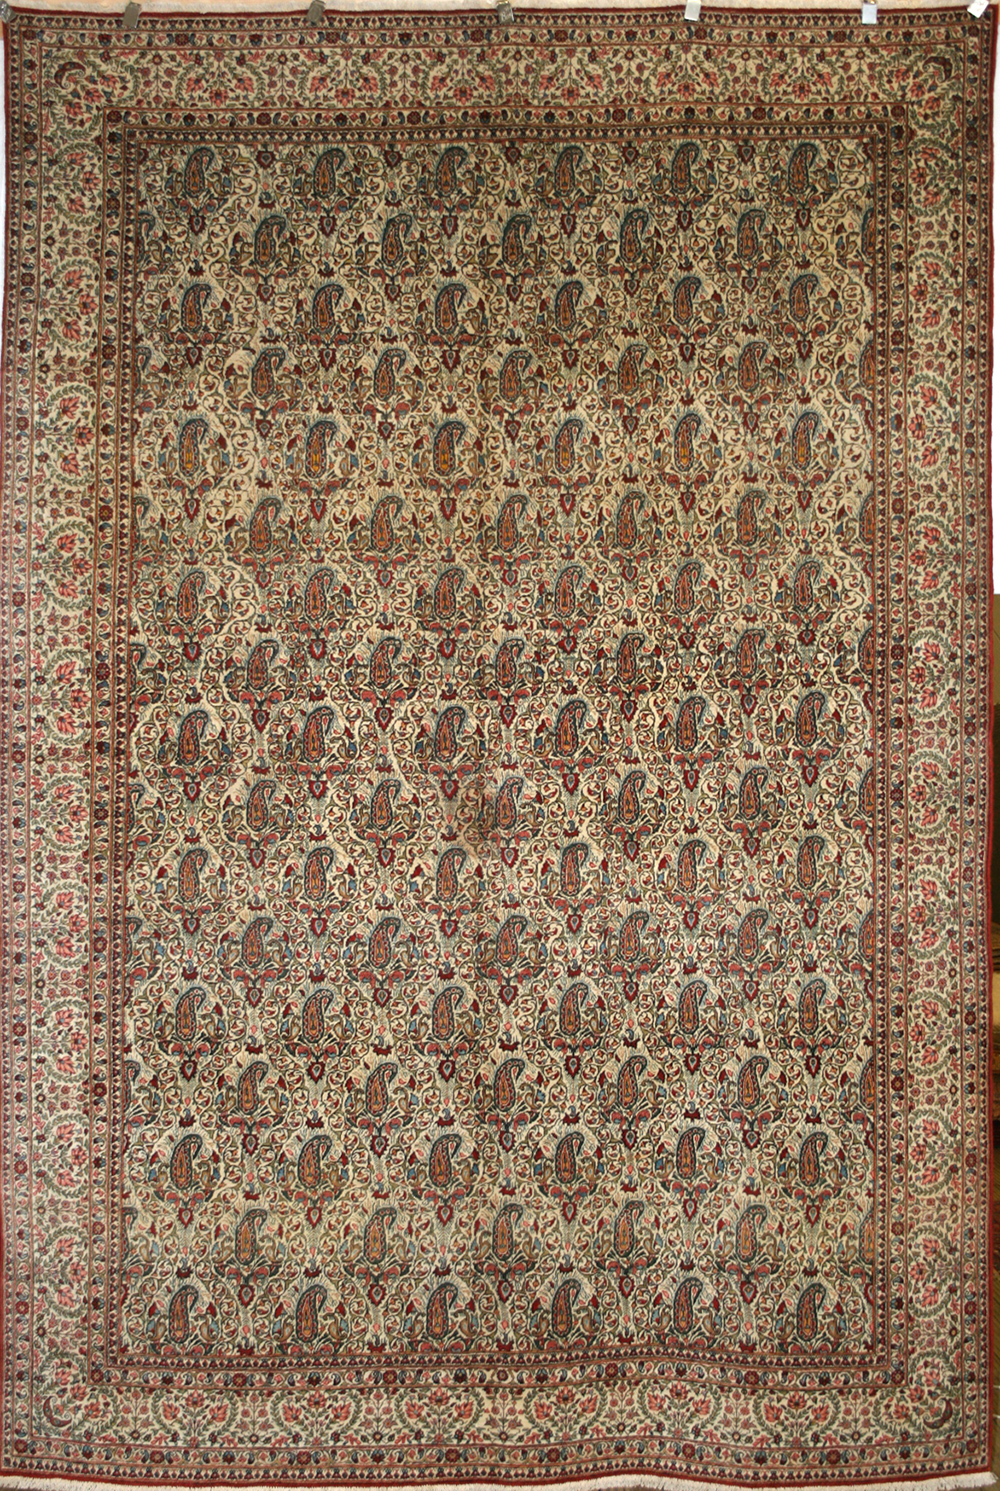 Antique Persian Or Oriental Rugs And